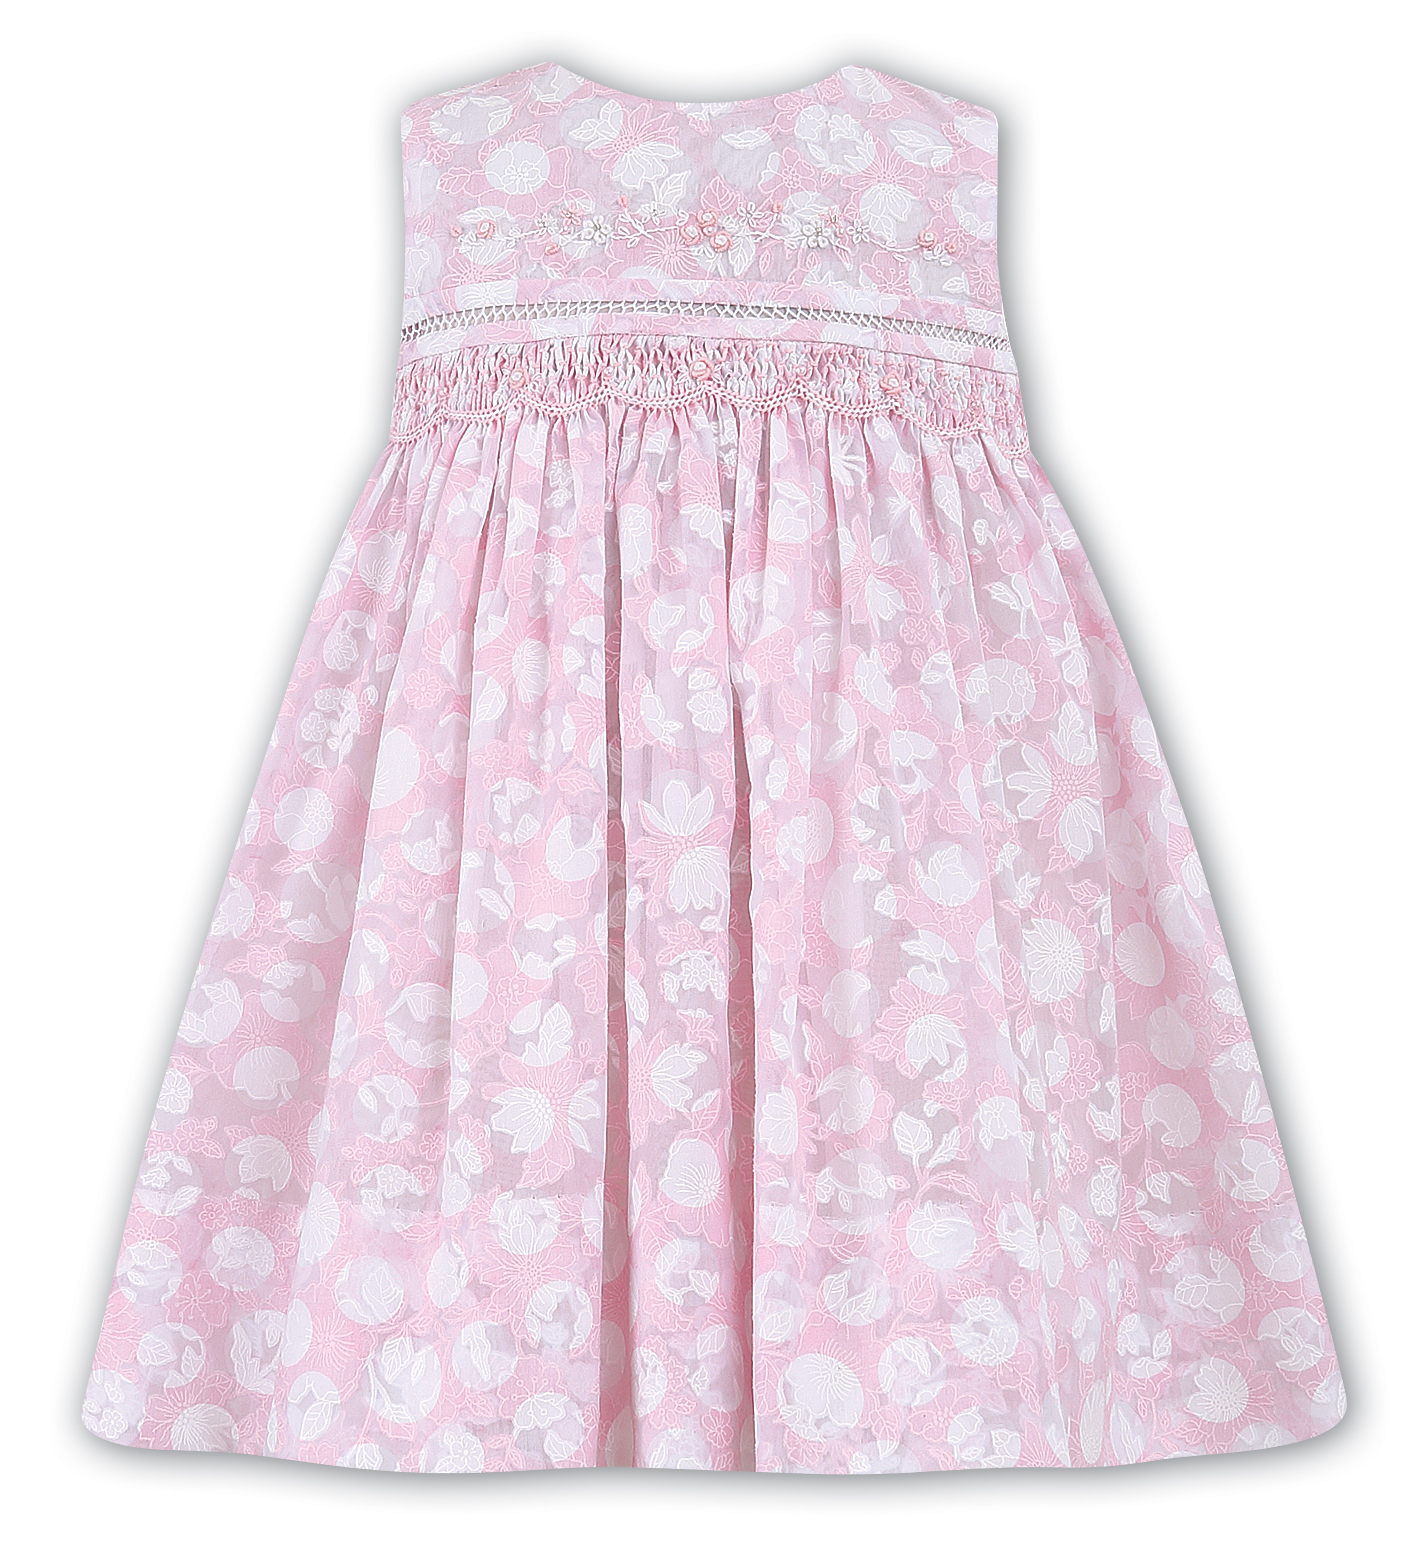 Beautiful Baby boutique offers the latest designer children's wear in the Uk for boys and girls from baby to 14 years. We stock lots of pink & blue baby clothes and many of our kids designer brands are suitable for both every day and special occasion.